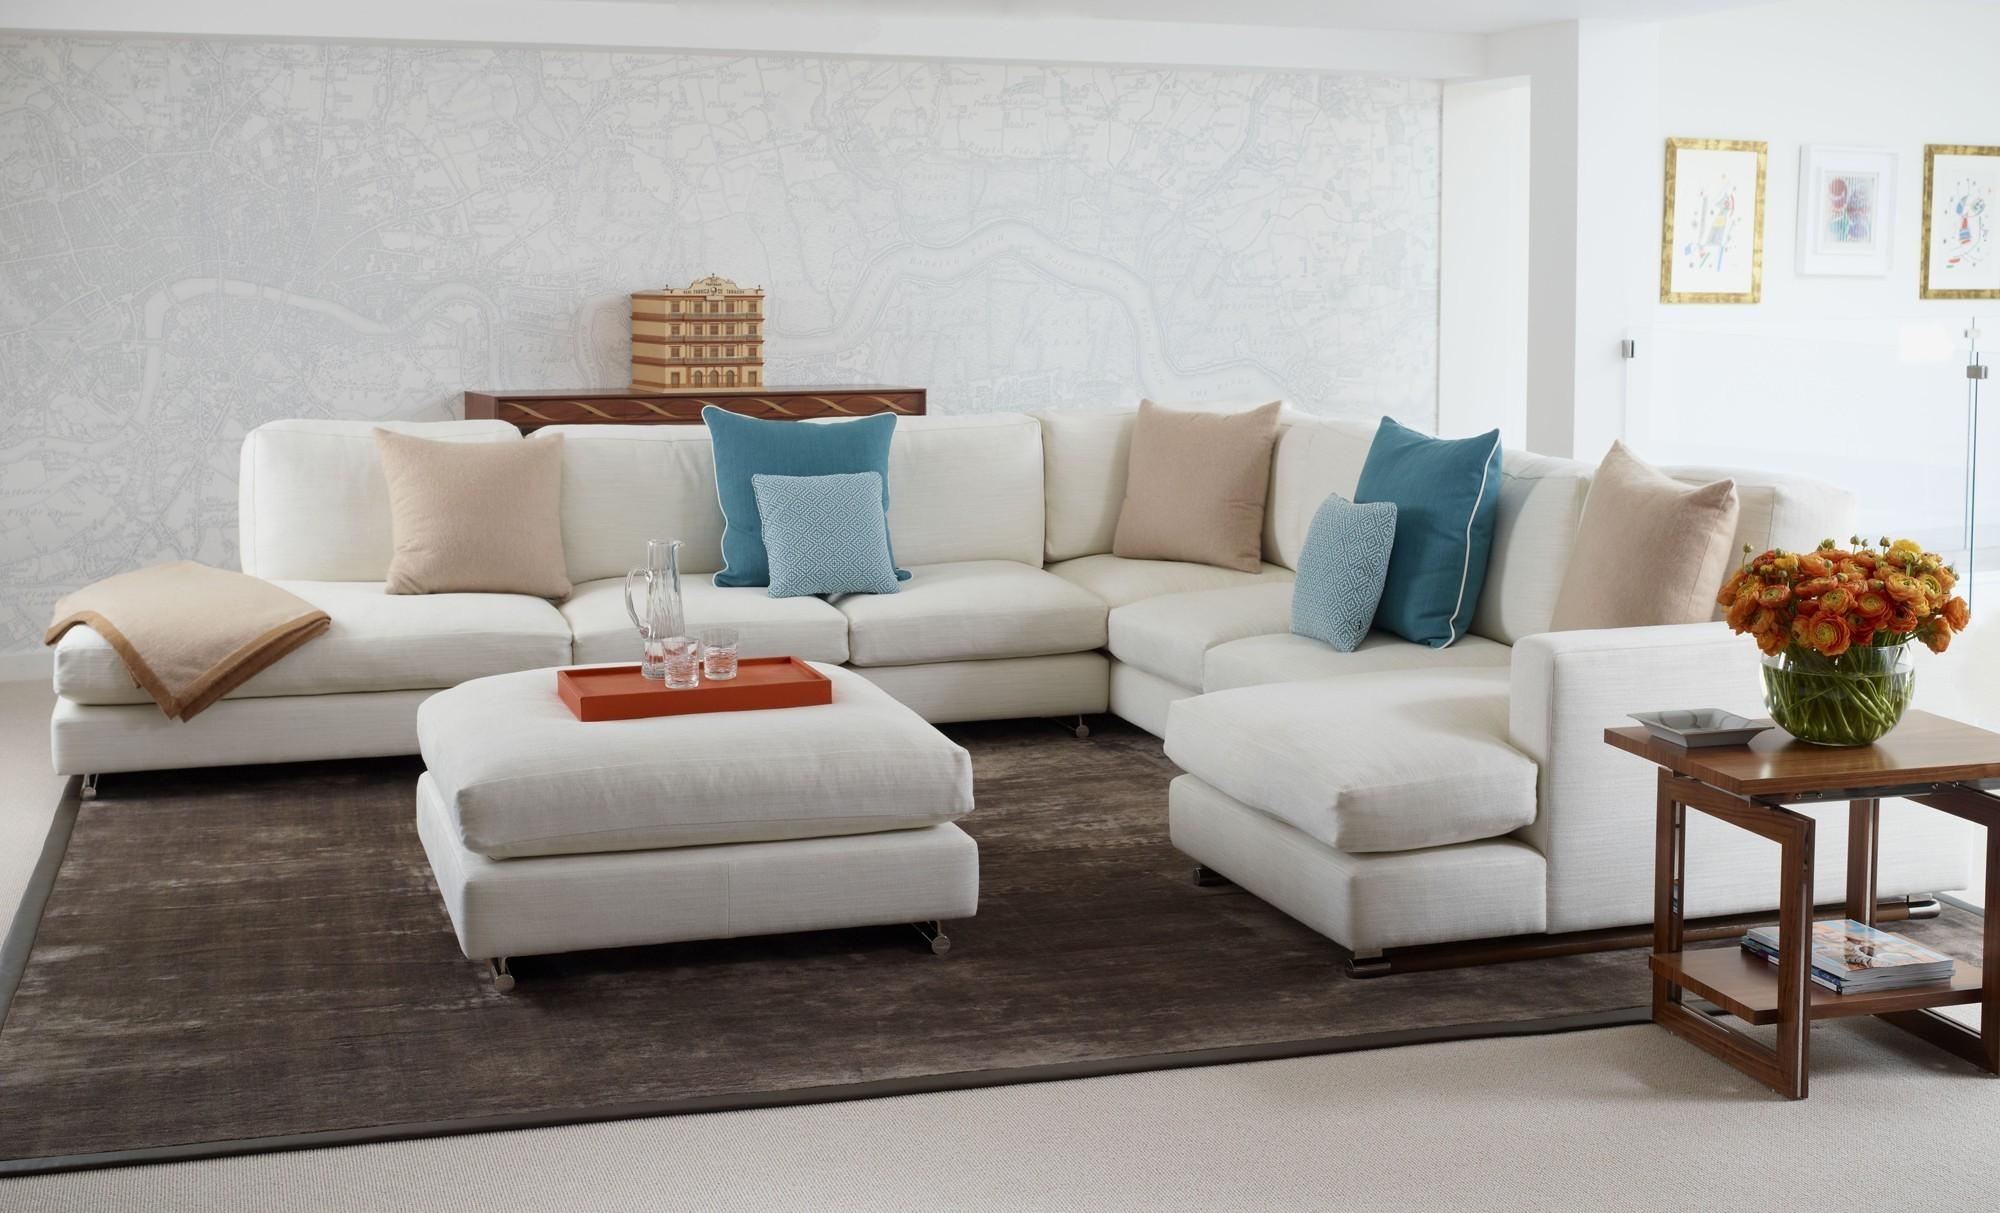 Small L Shaped Sofa | Sofa Gallery | Kengire Regarding Small L Shaped Sofas (View 15 of 20)